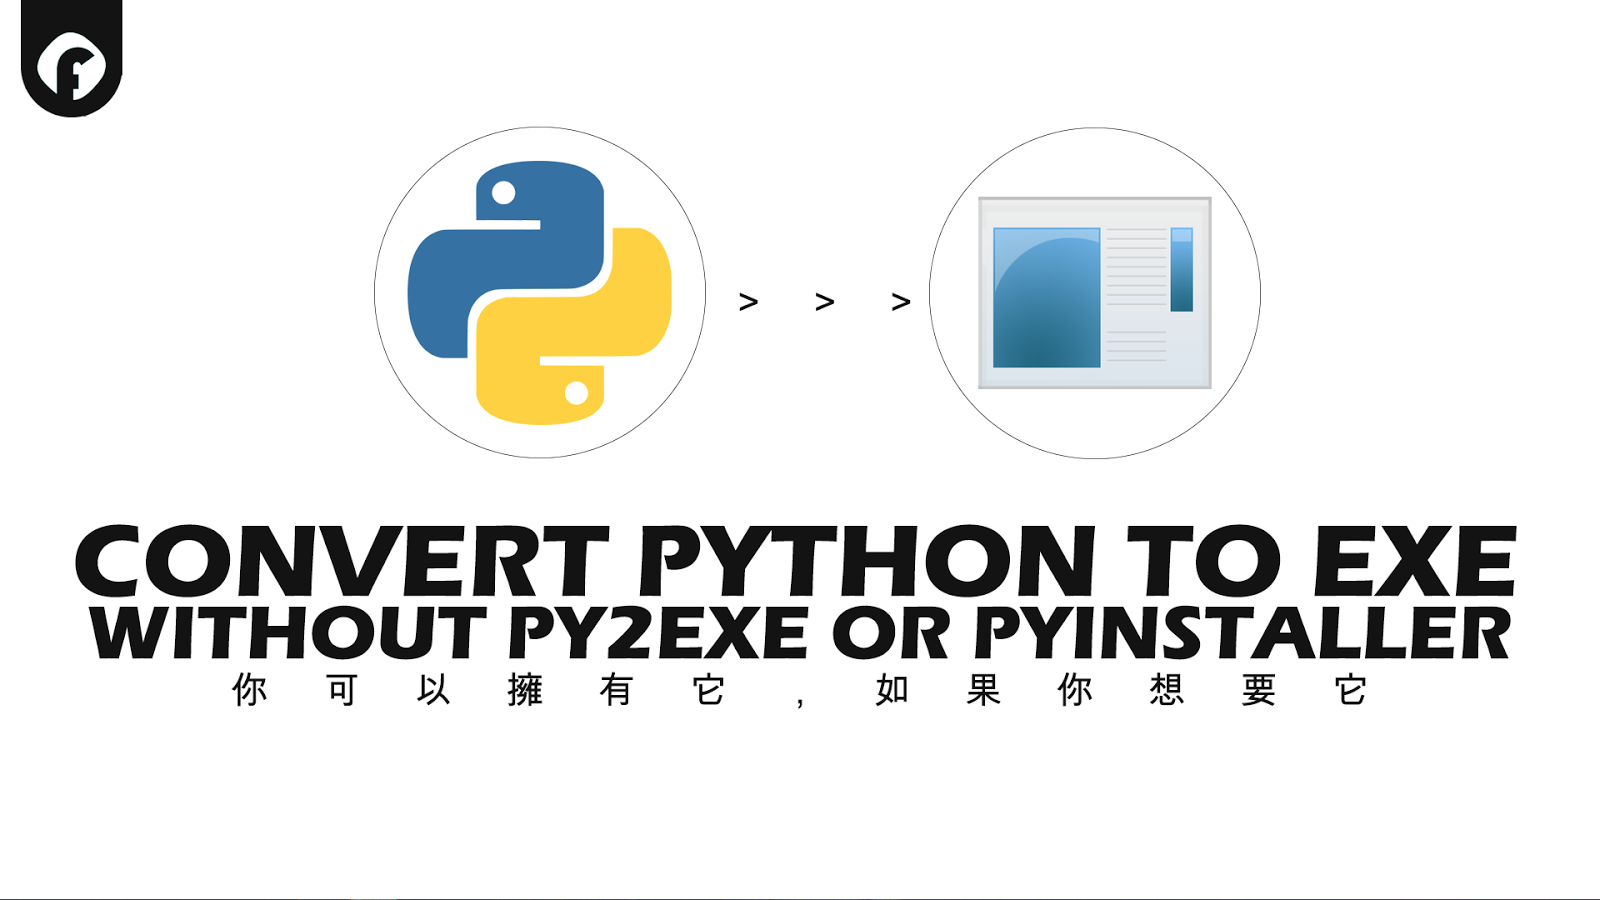 Convert py to Exe without Py2exe , Pyinstaller | Easy